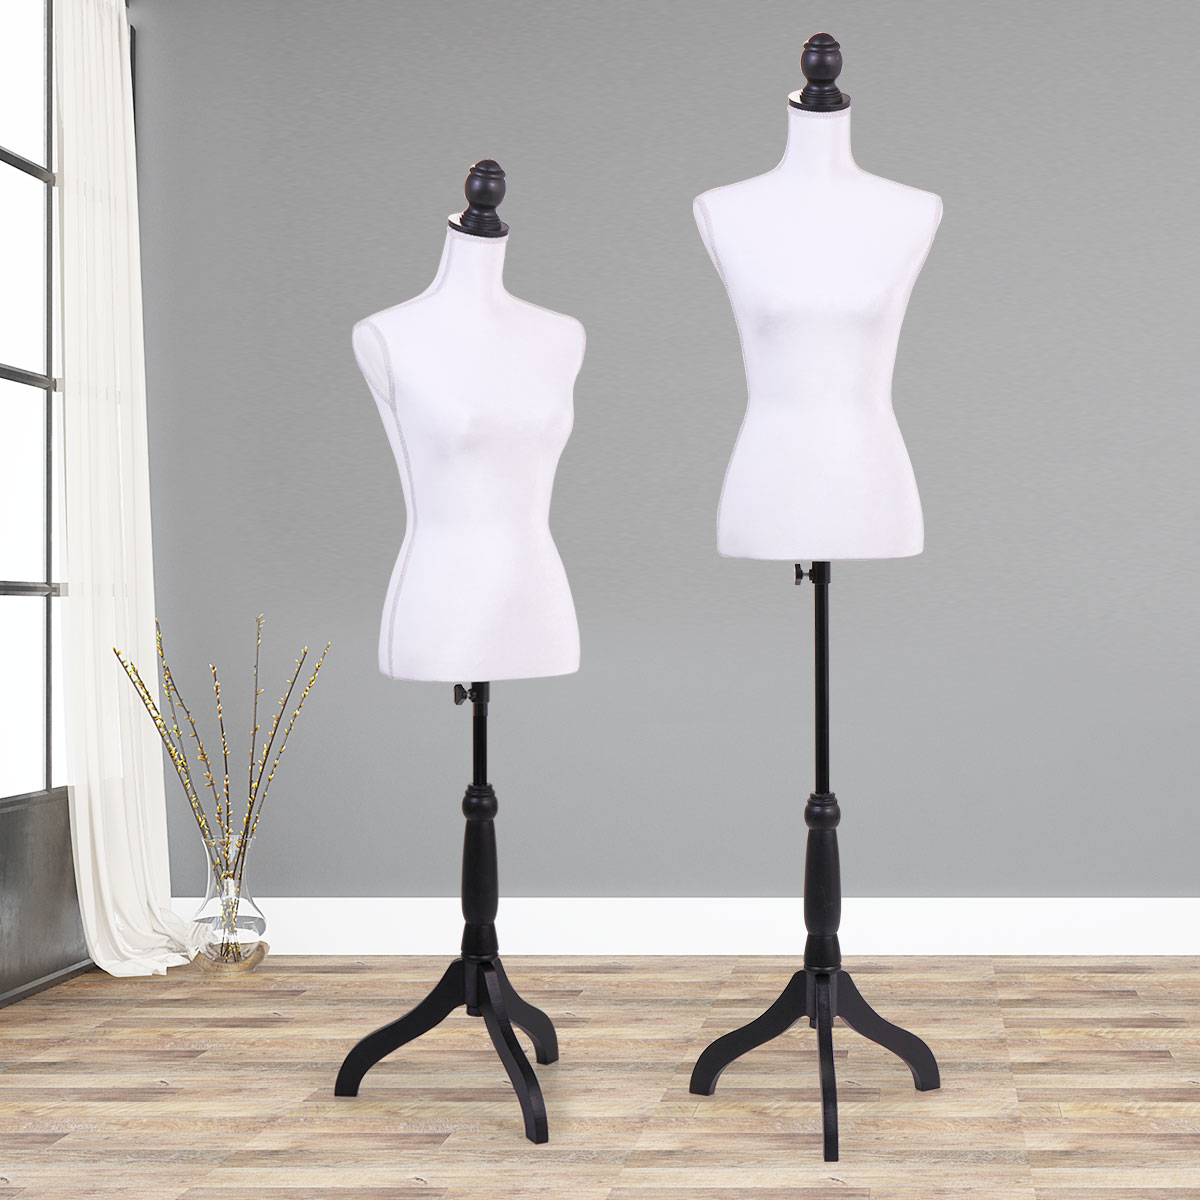 Jaxpety White Female Mannequin Torso Dress Clothing Form Display Sewing Mannequin W/ Tripod Stand New